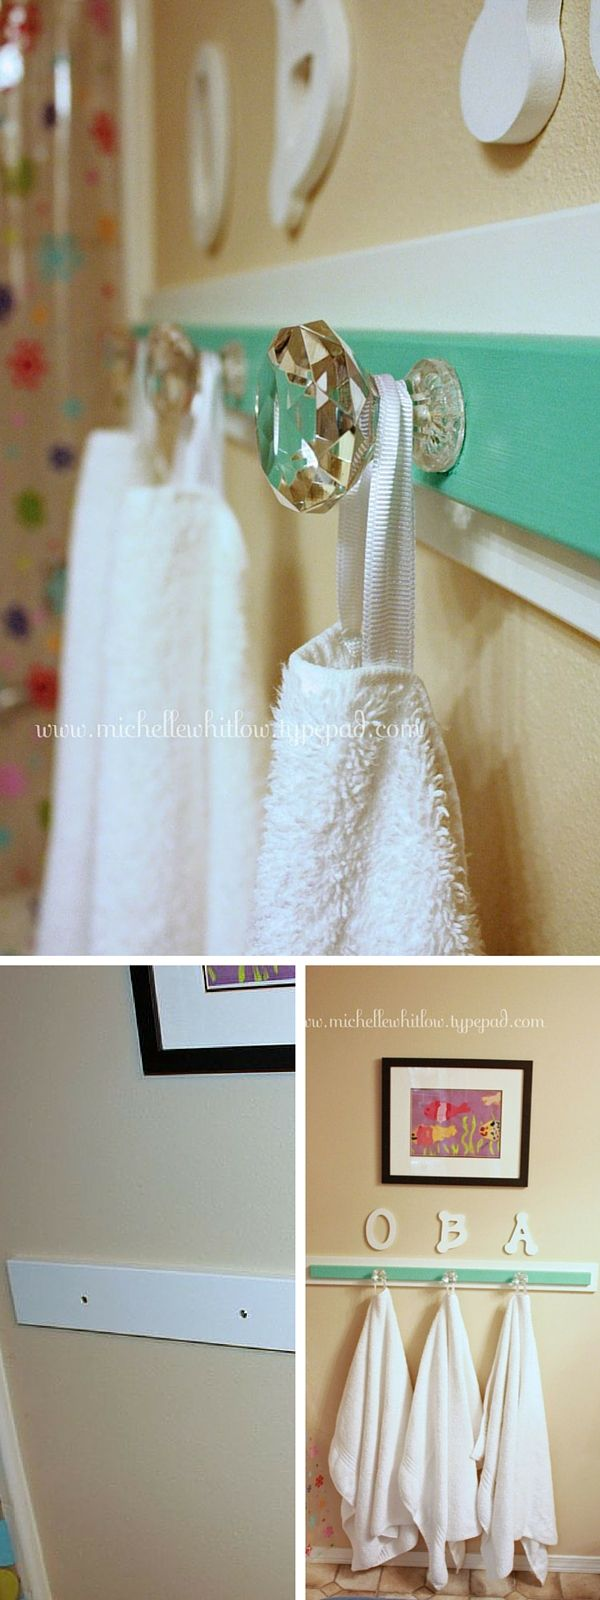 25 Best Ideas About Bathroom Towel Hooks On Pinterest Diy Bathroom Towel Hooks Bathroom